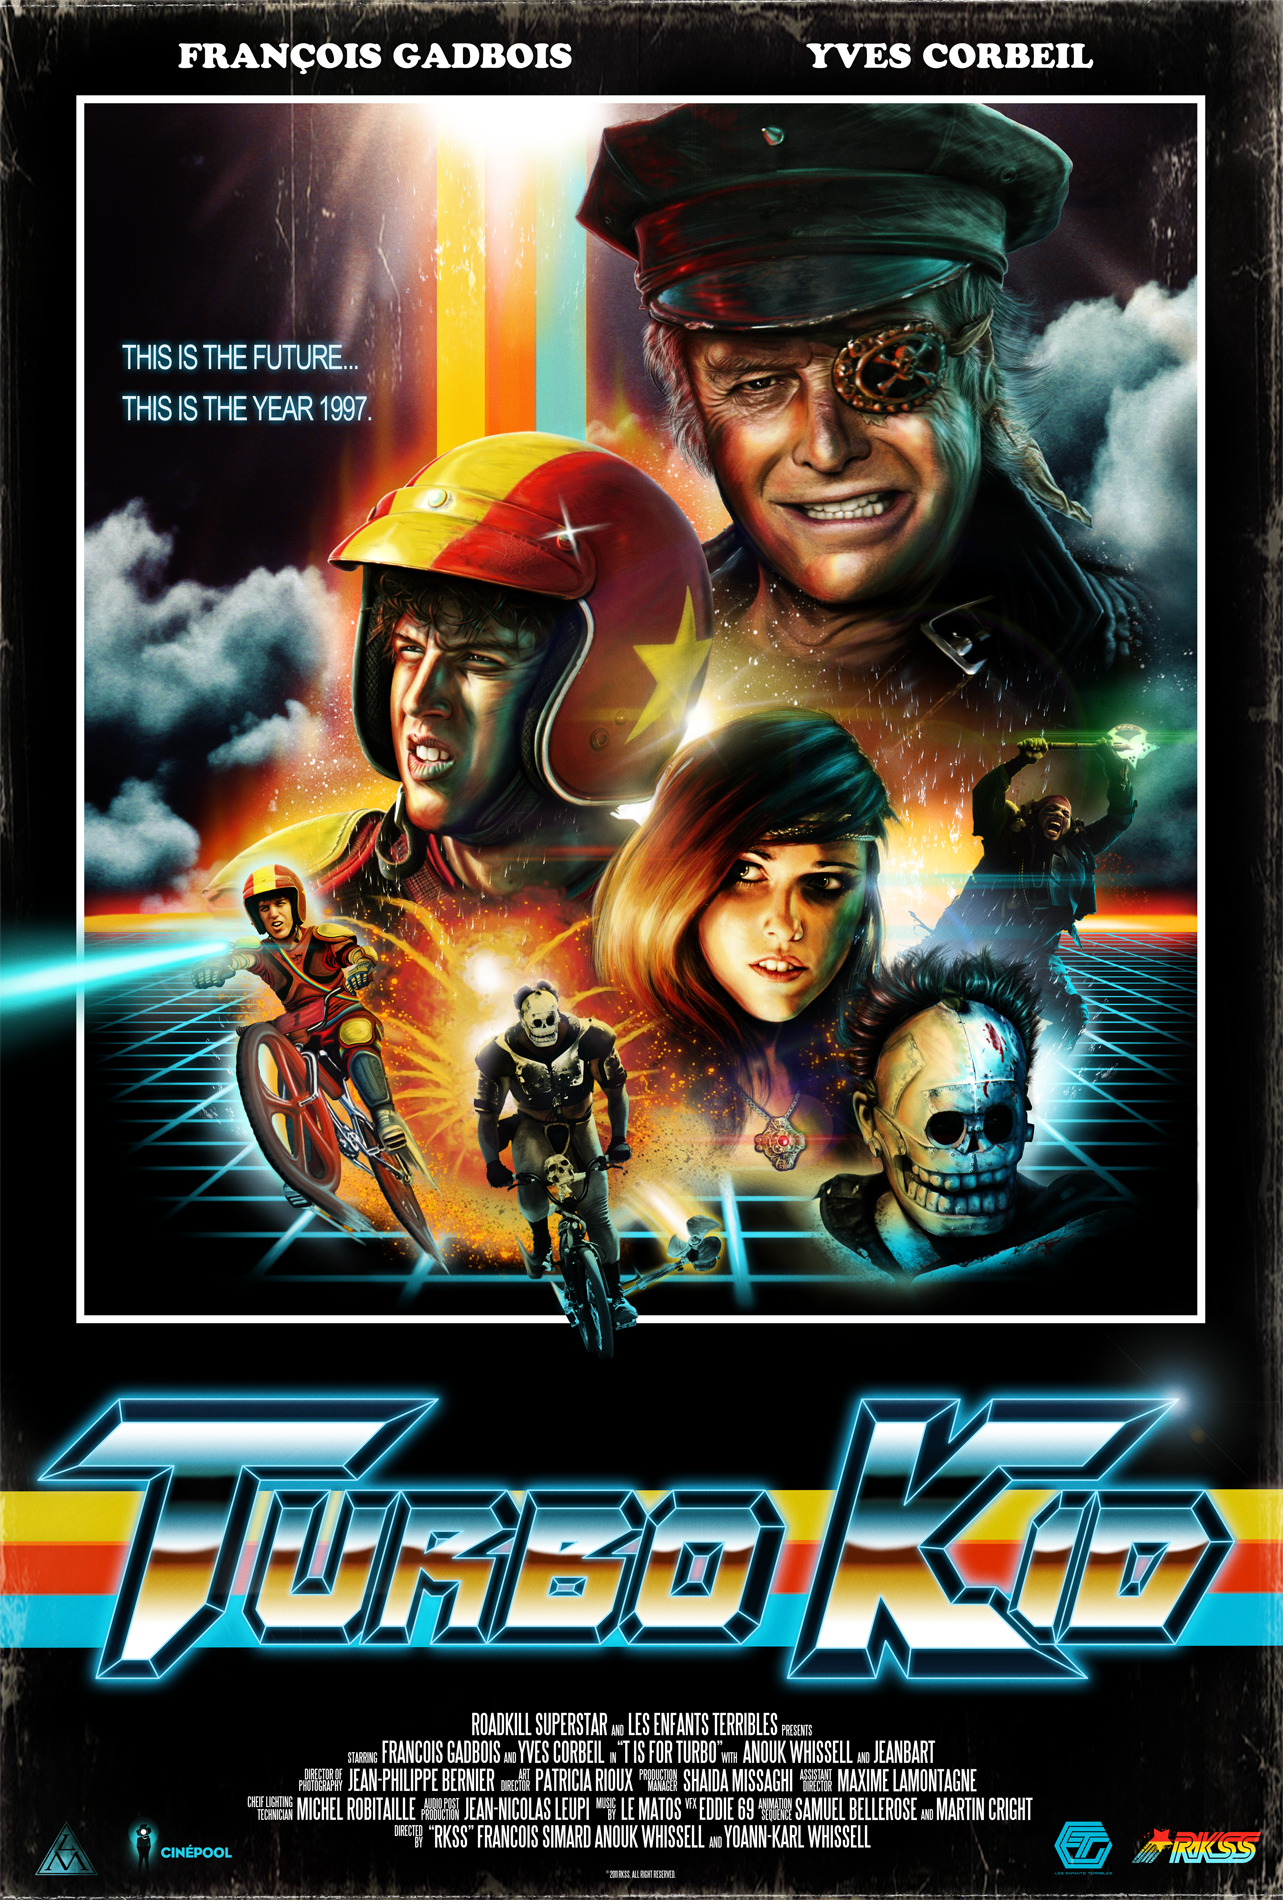 Turbo kid moviepedia fandom powered by wikia for Movie photos for sale